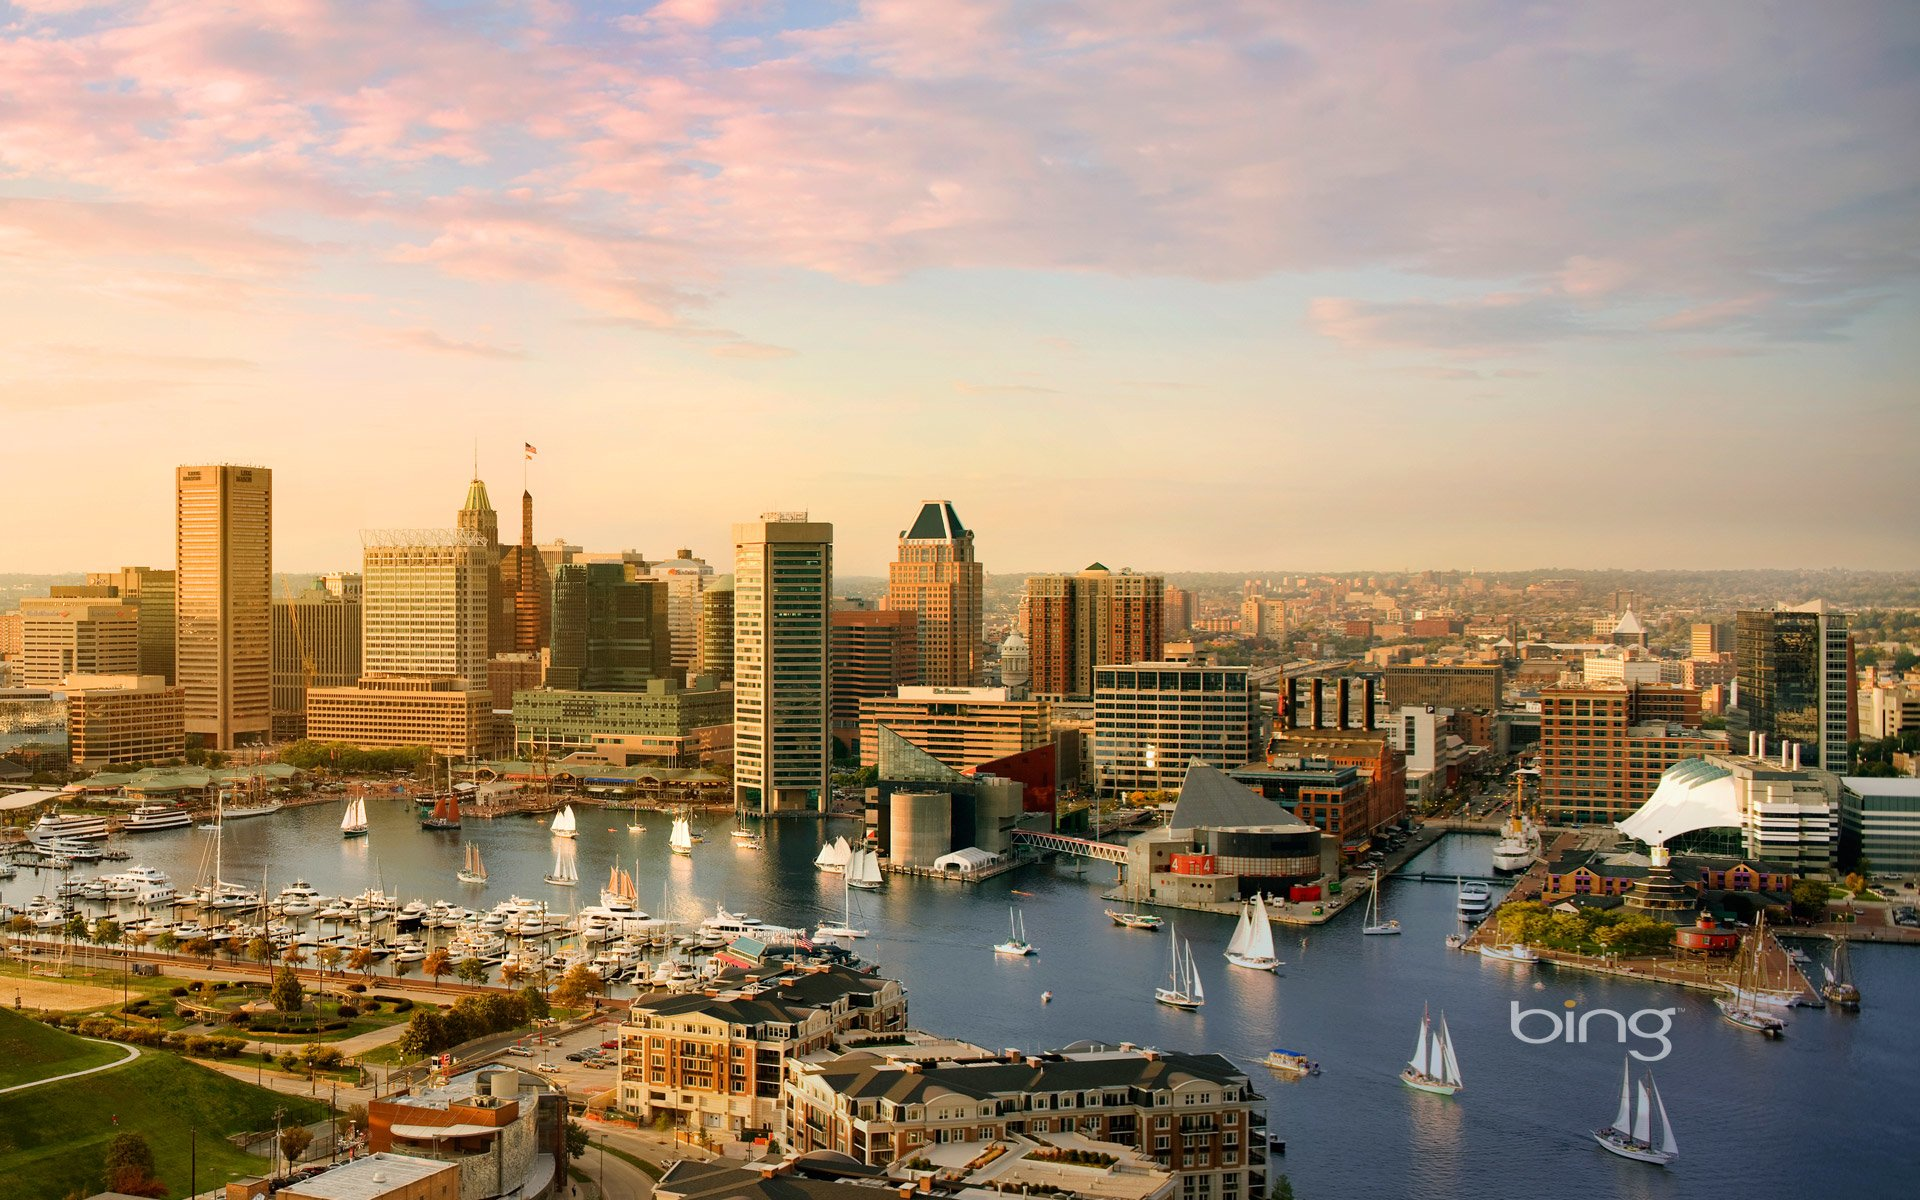 Baltimore HD Wallpaper  Background Image  1920x1200  ID